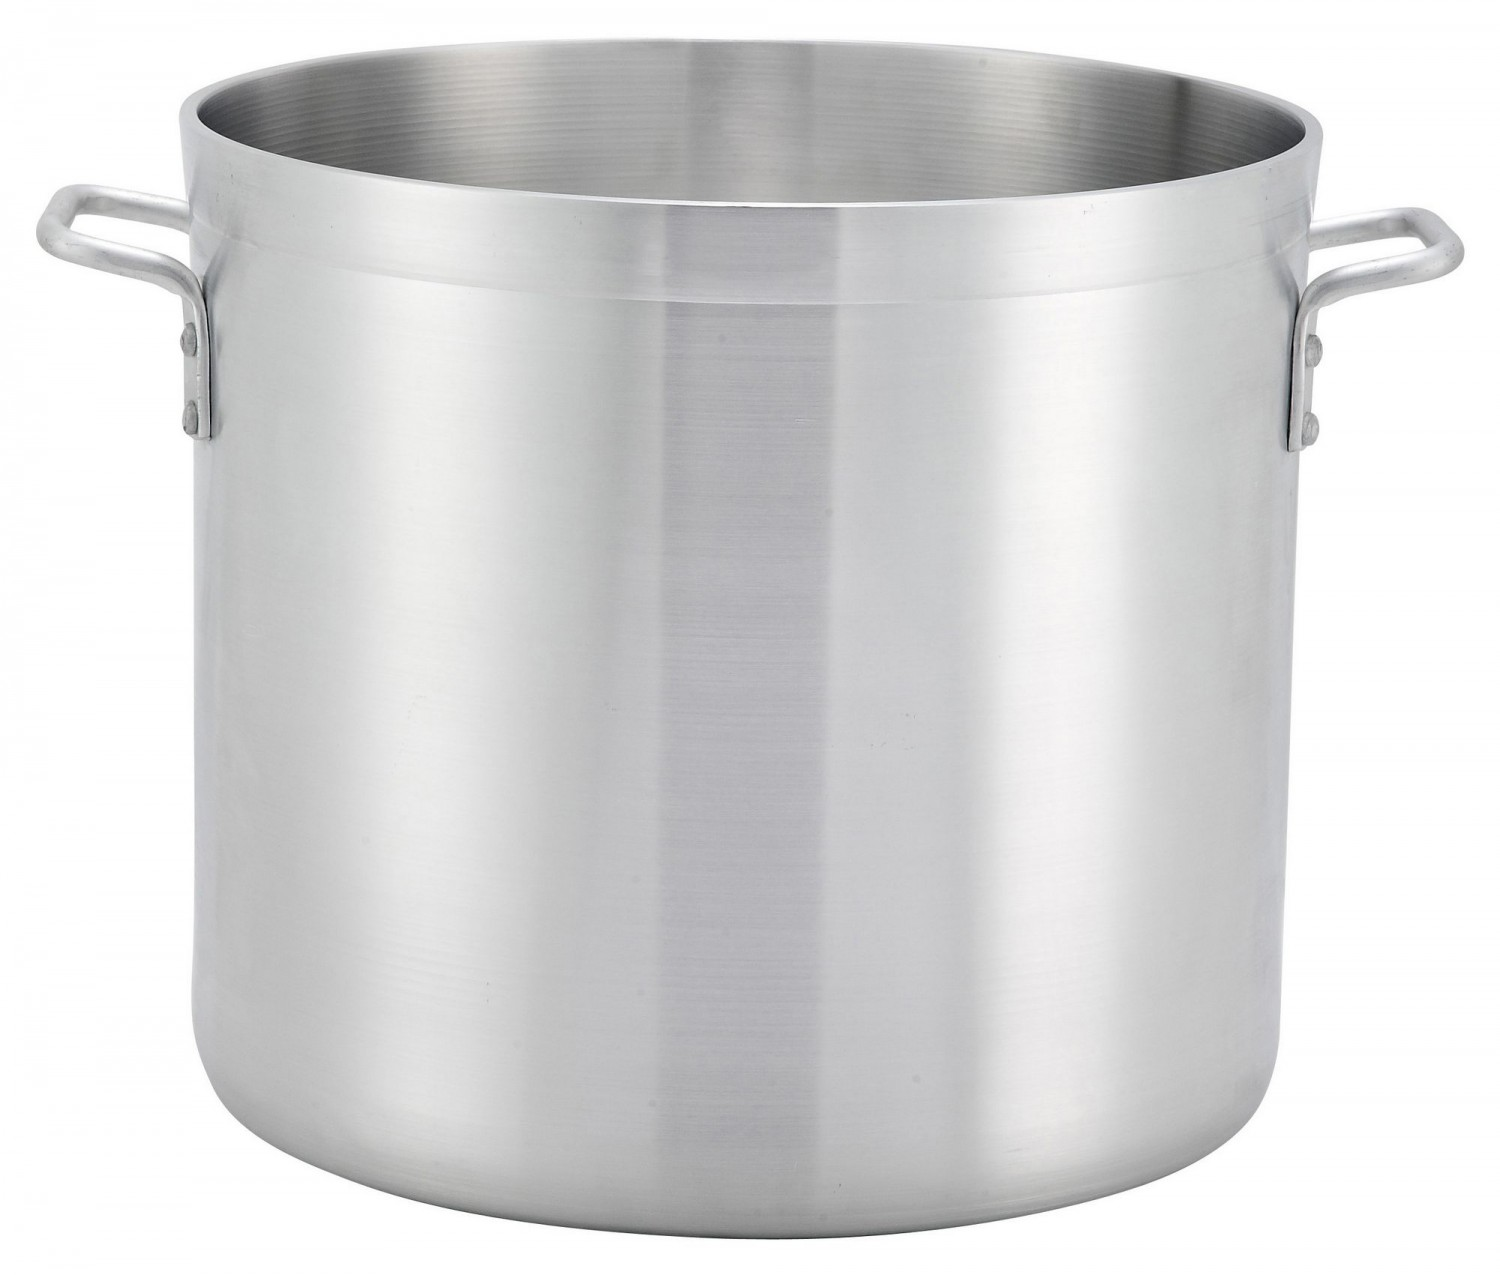 Winco ALHP-140 Precision Aluminum Stock Pot 140 Qt.